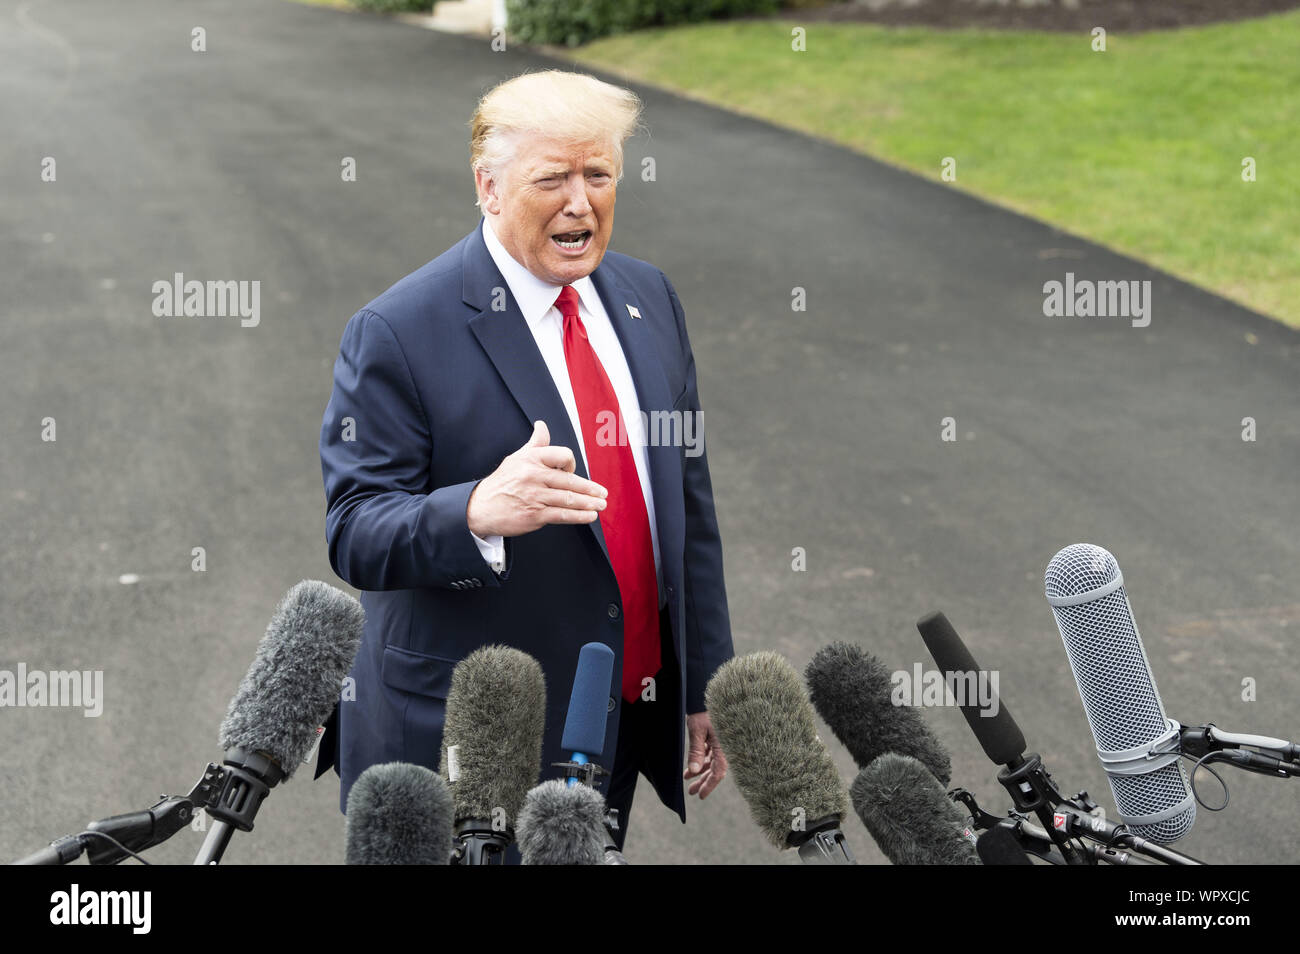 Washington, DC, USA. 9th Sep, 2019. September 9, 2019 - Washington, DC, United States: President DONALD TRUMP speaking with the press near the South Lawn of the White House as he leaves to go to a rally in North Carolina. Credit: Michael Brochstein/ZUMA Wire/Alamy Live News Stock Photo